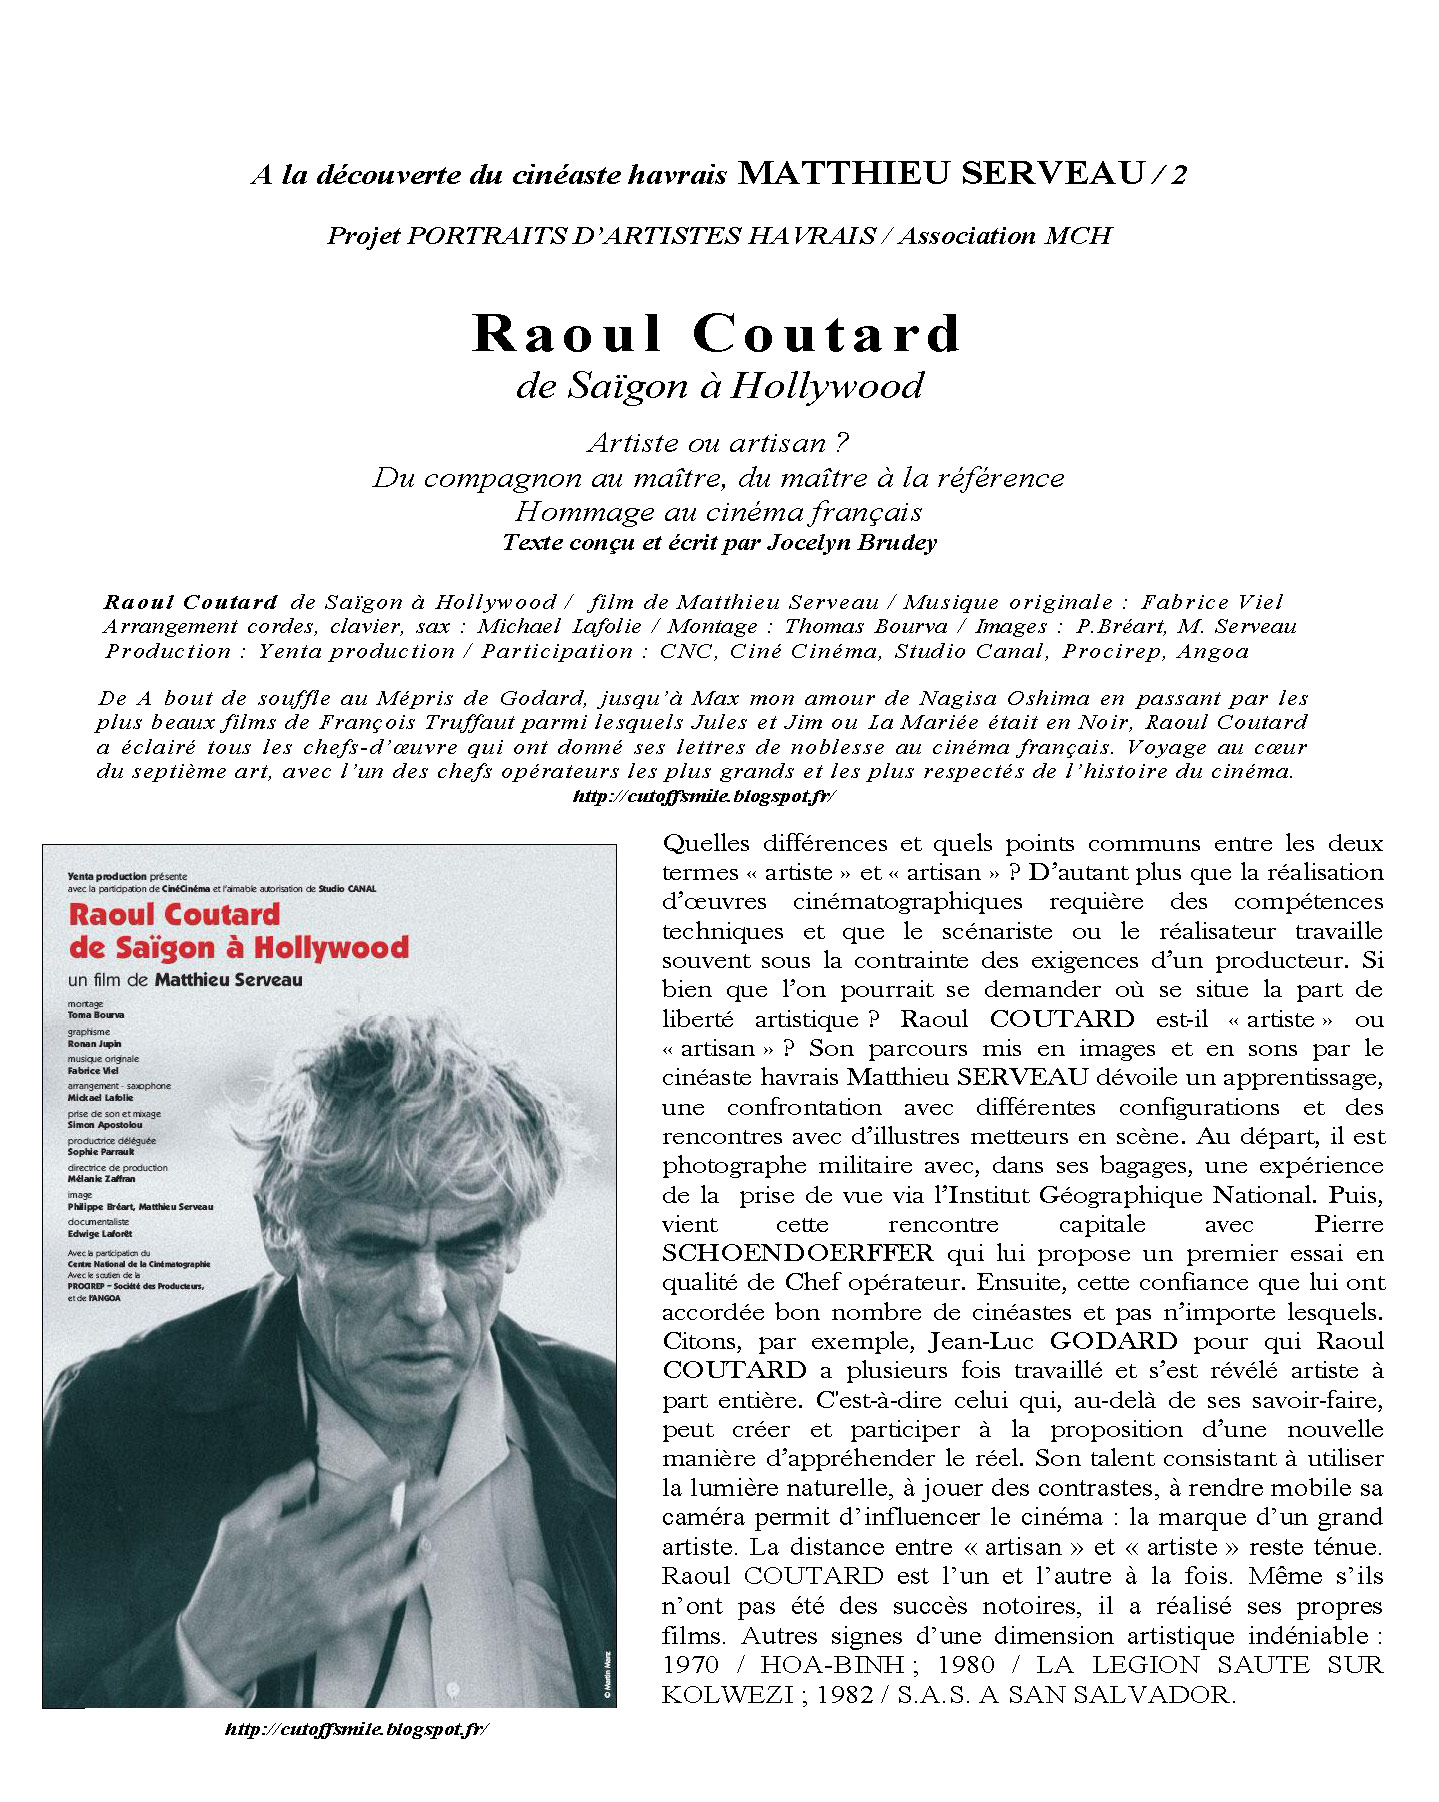 Serveau Matthieu_article 2_Raoul Coutard_Page_1